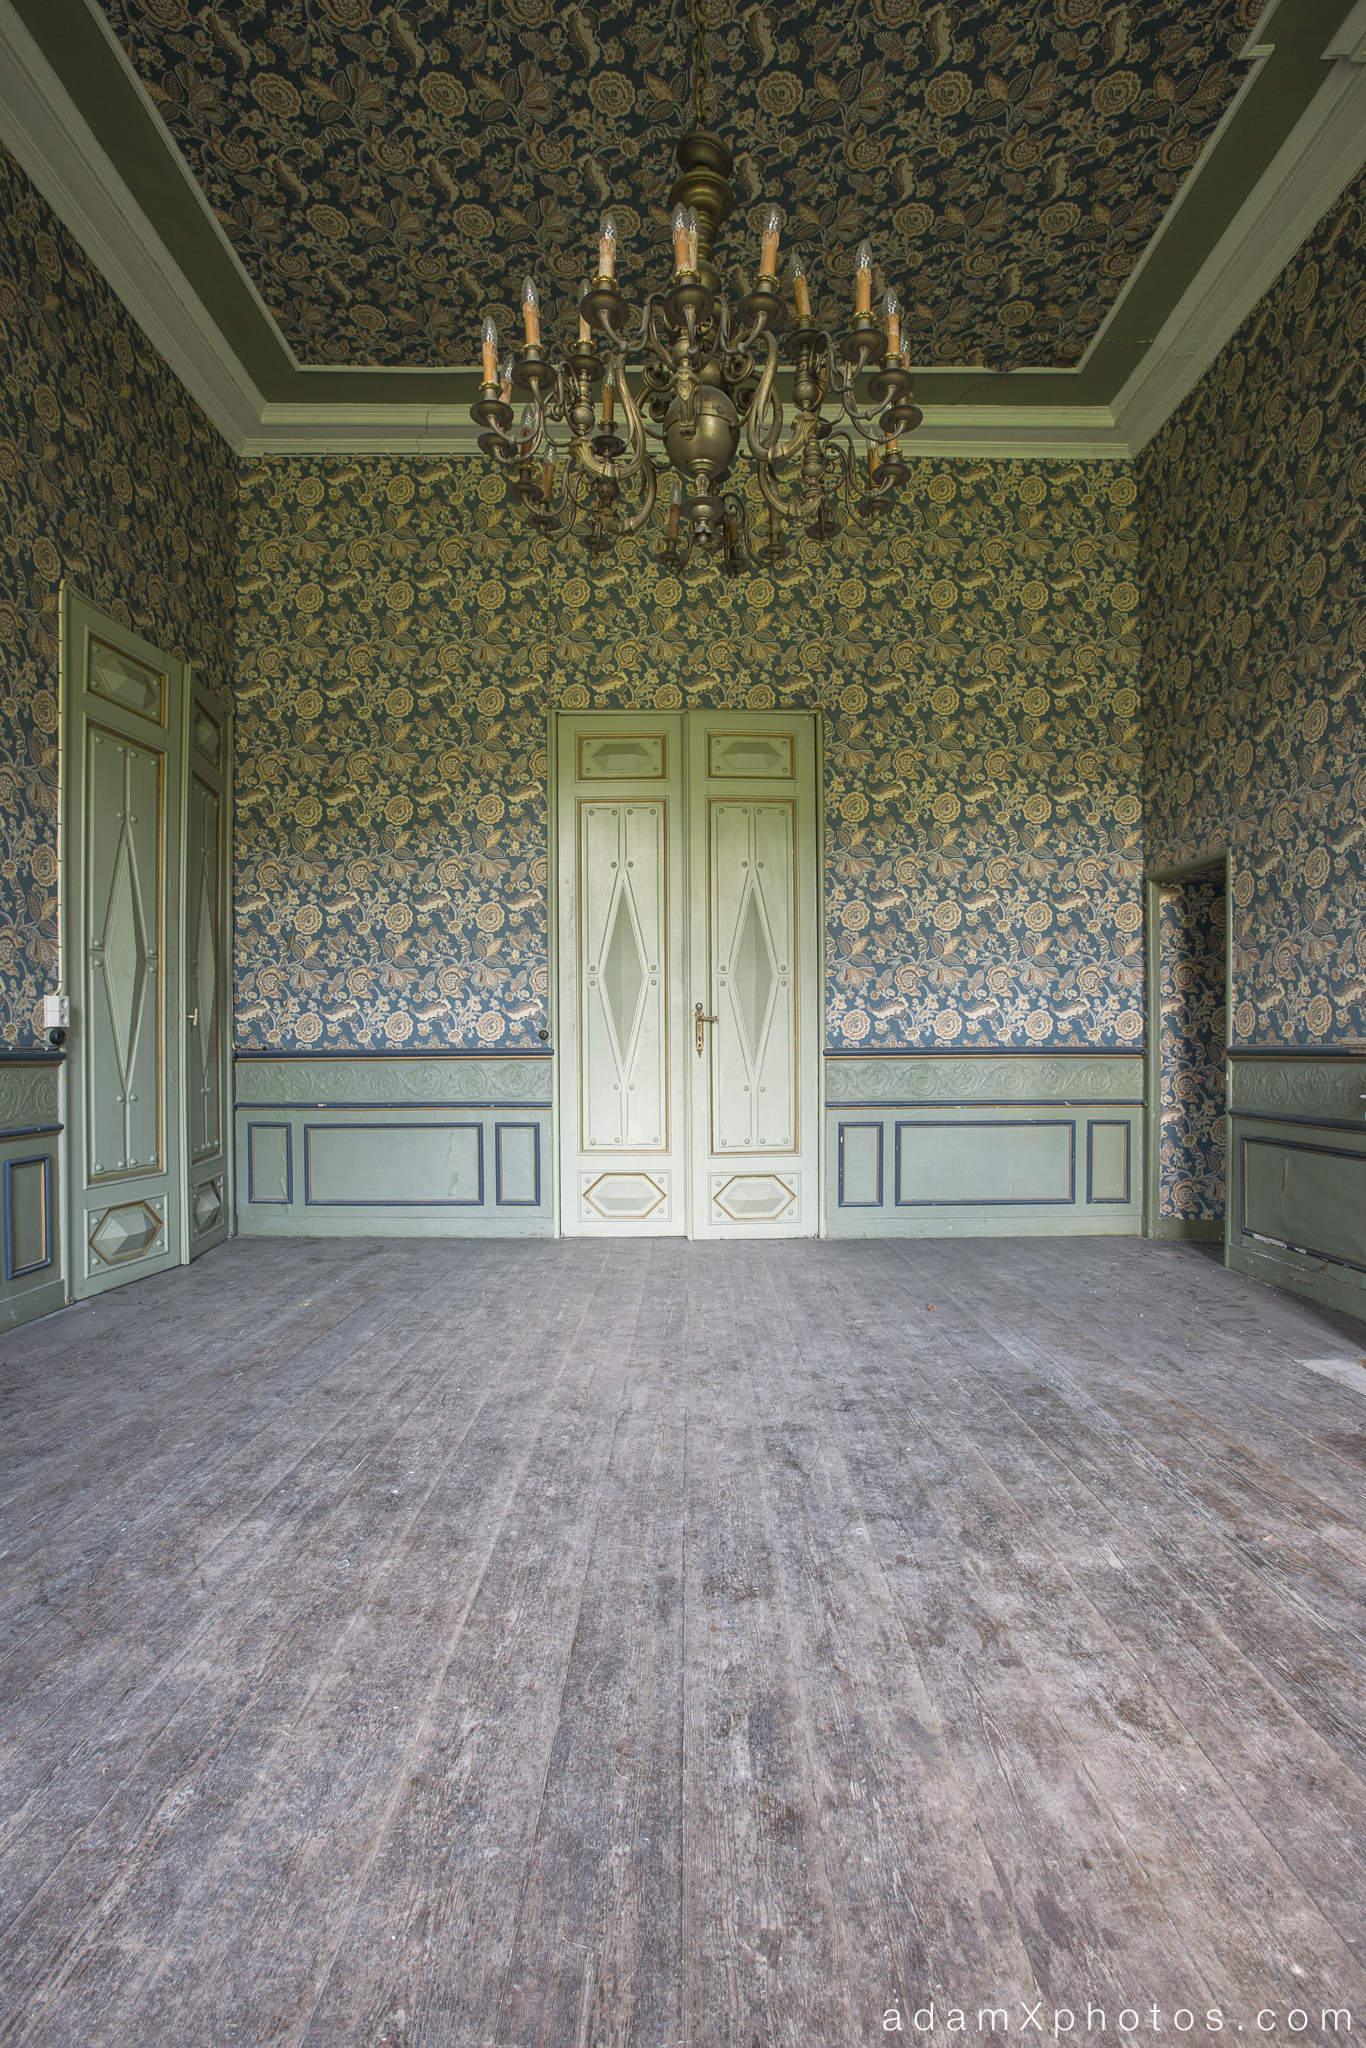 Adam X Chateau de la Chapelle urbex urban exploration belgium abandoned grand room chandelier wallpaper